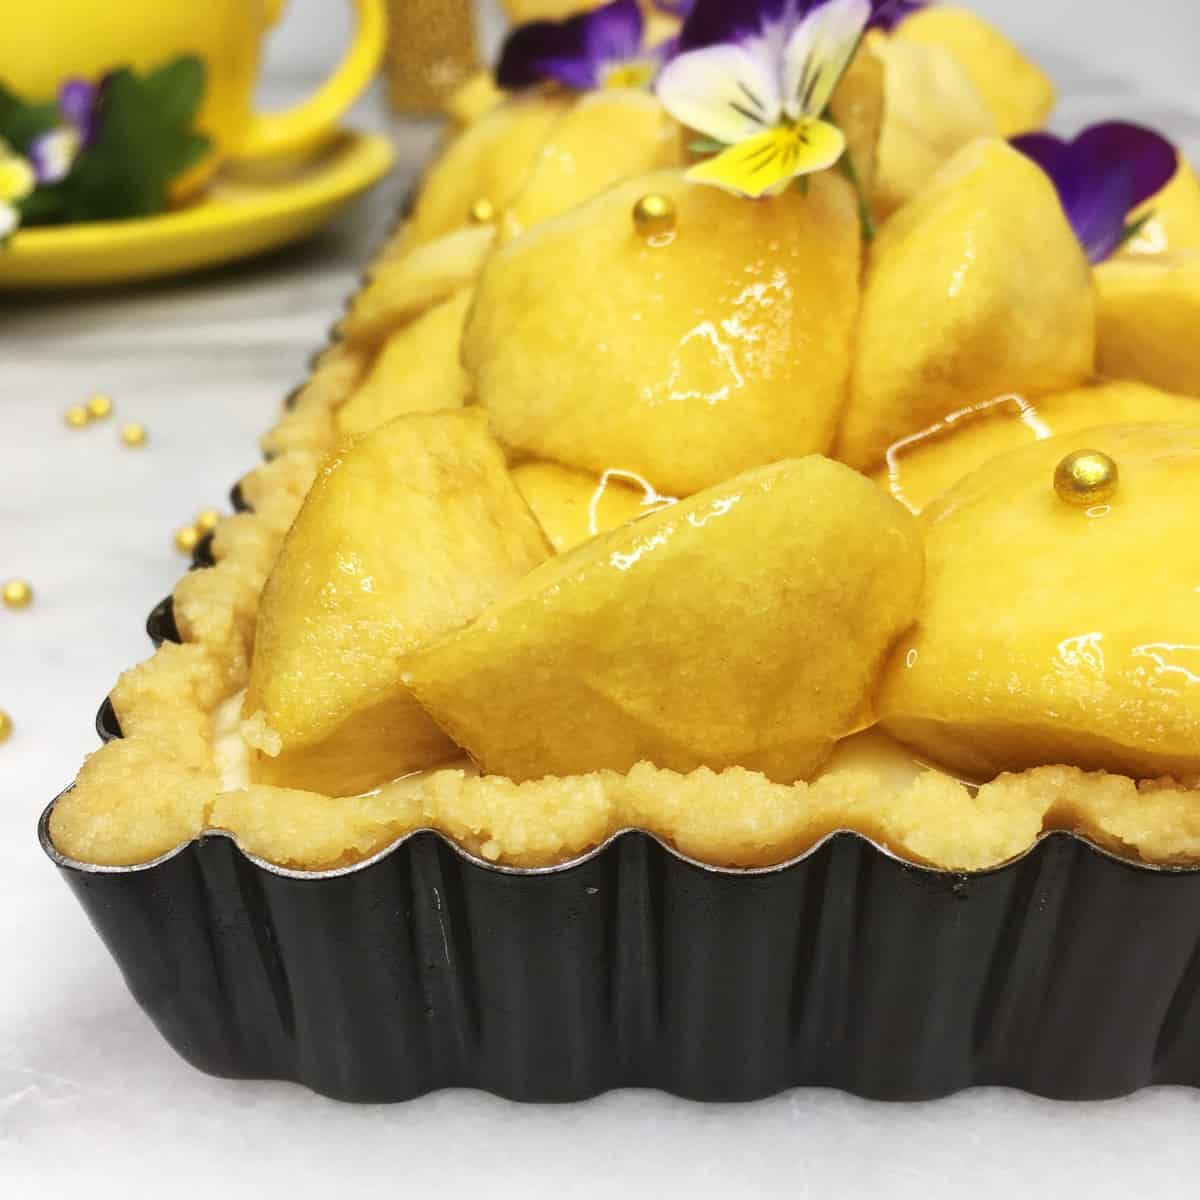 Apple tart decorated with gold pearls and flours in a tart pan with a yellow cup on the background